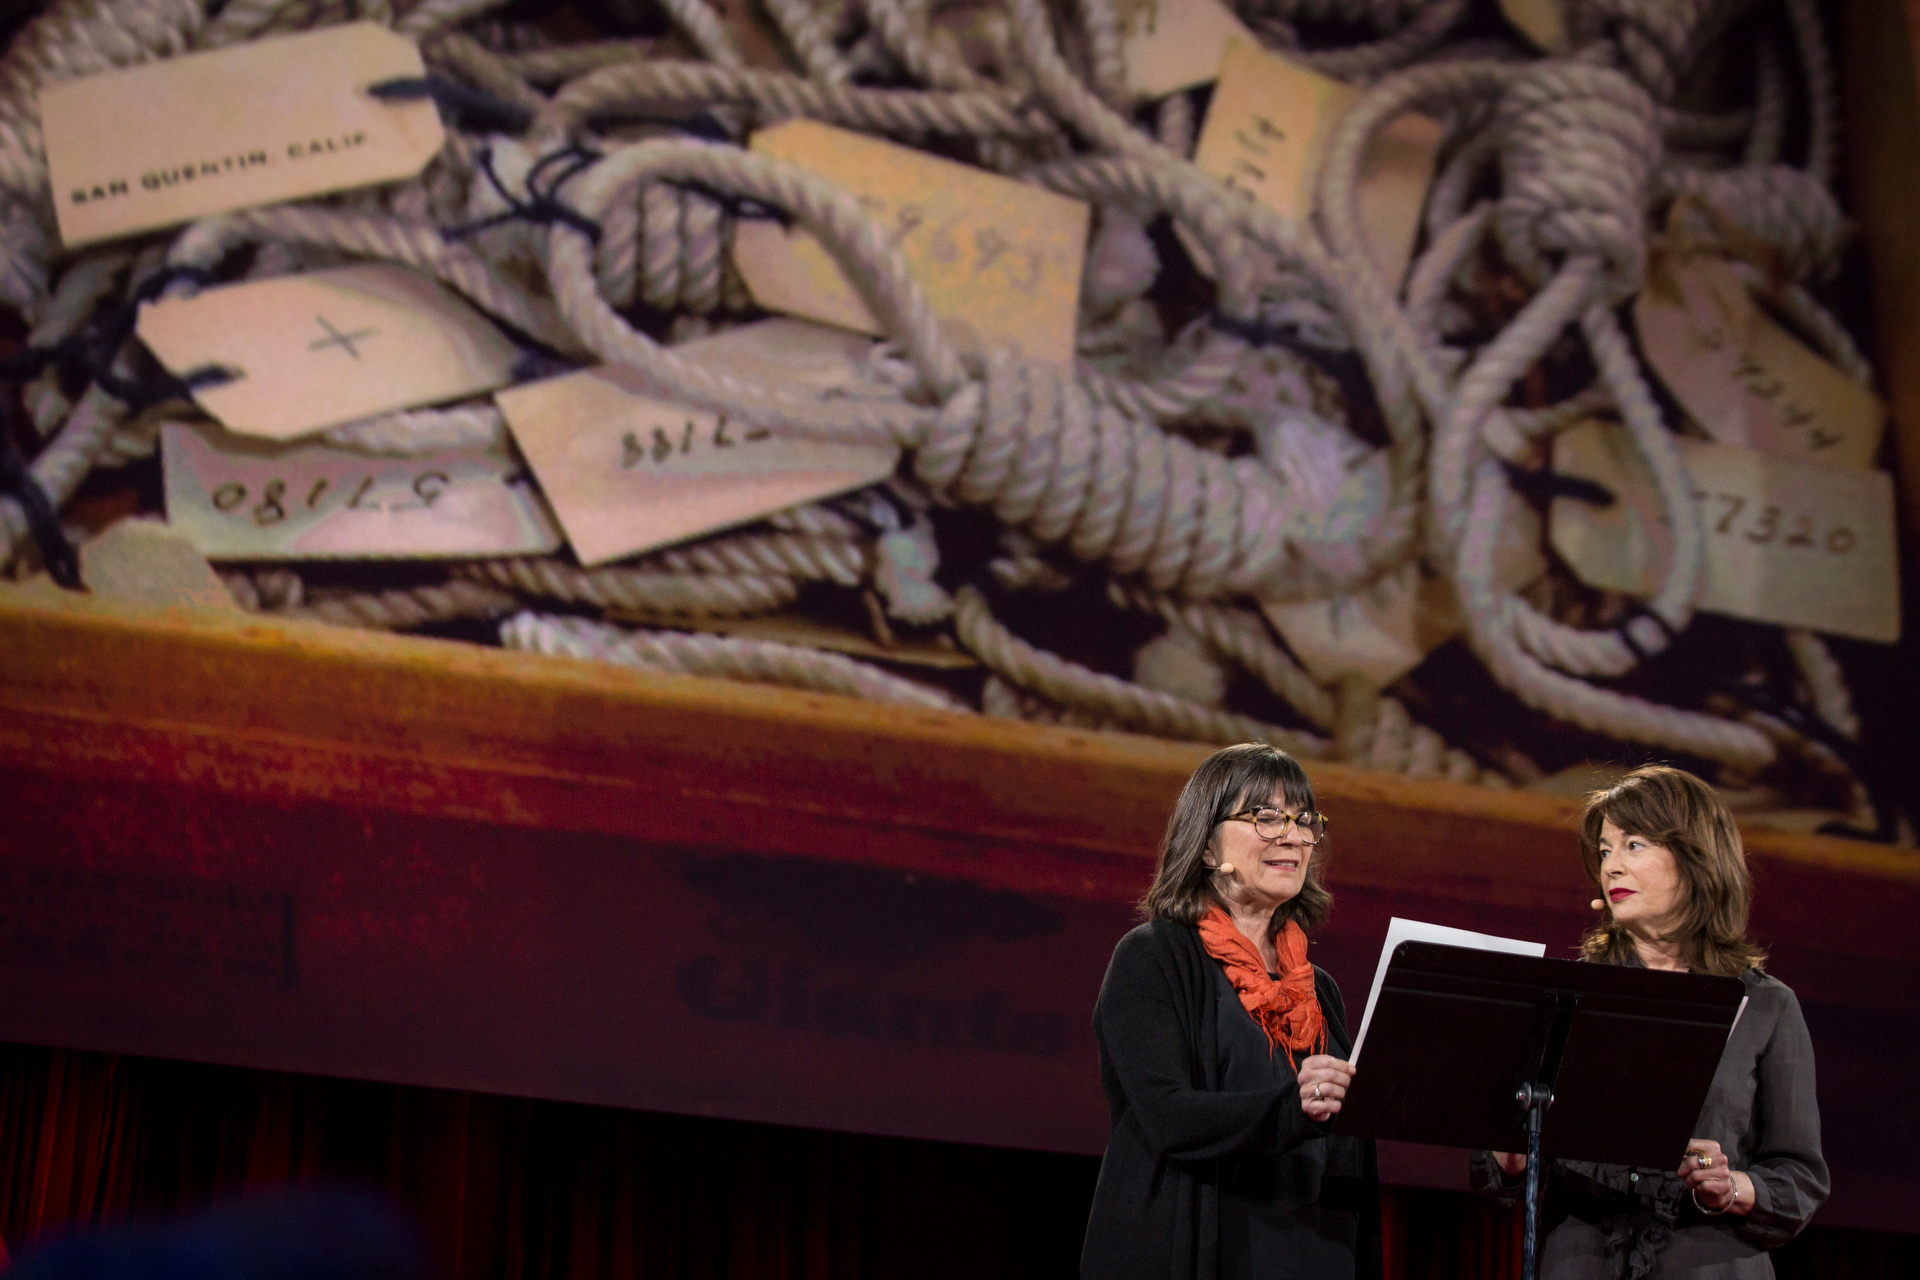 """The Kitchen Sisters tell the story of """"Wall Street,"""" a prisoner at San Quentin who is a natural at trading stocks, during Session 8. Read more. Photo: Bret Hartman/TED  http://blog.ted.com/pop-up-magazine-the-engrossing-talks-of-session-8-of-ted2015/"""